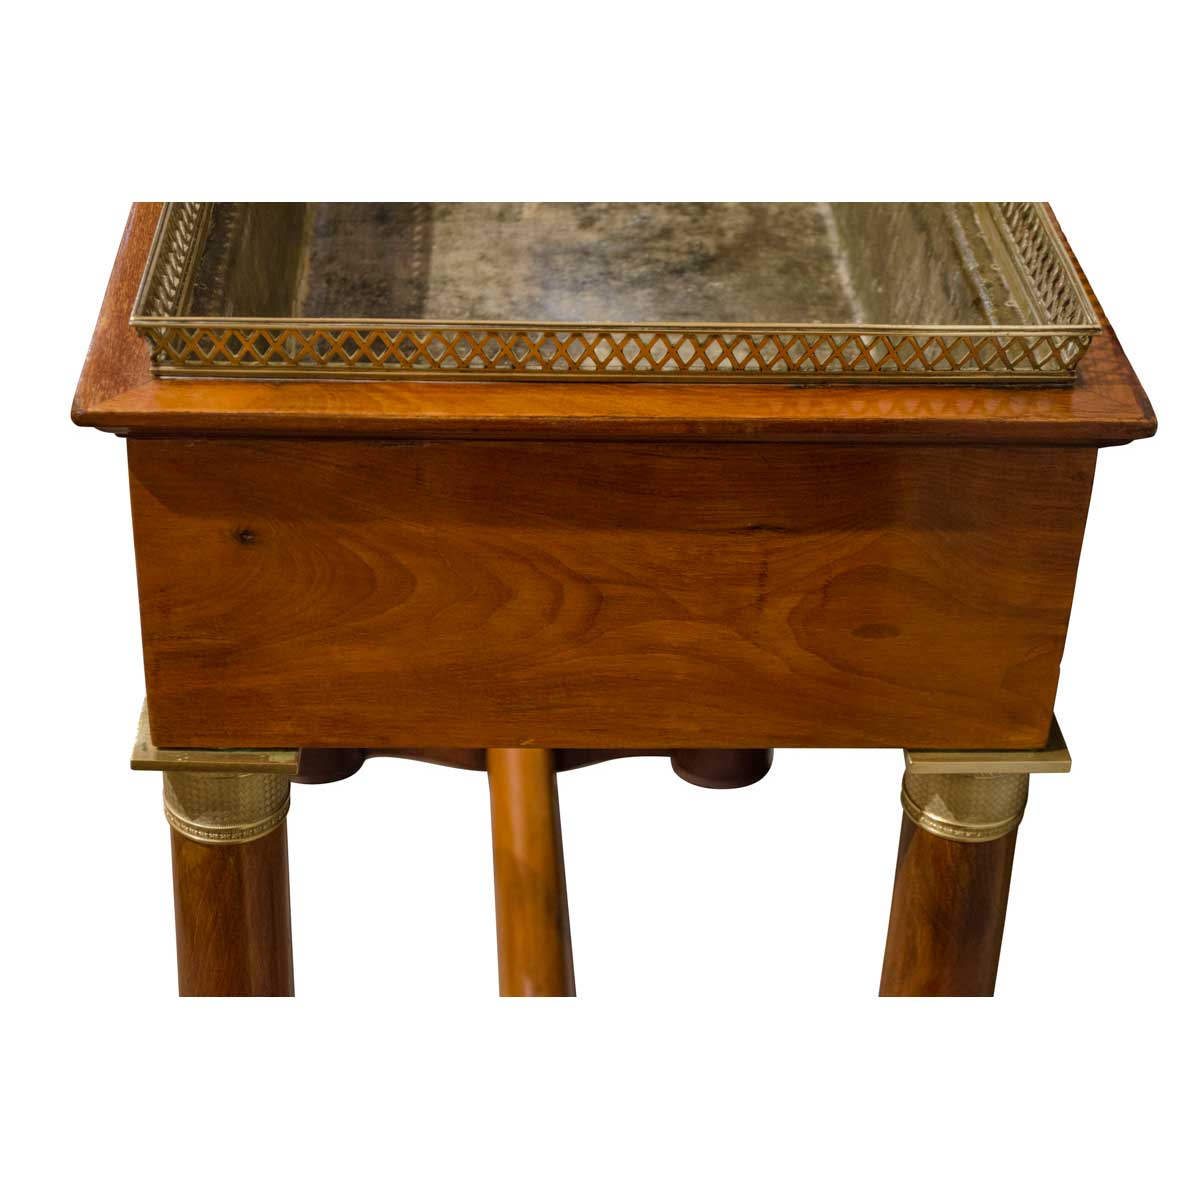 19th Century Antique French Mahogany Jardinière